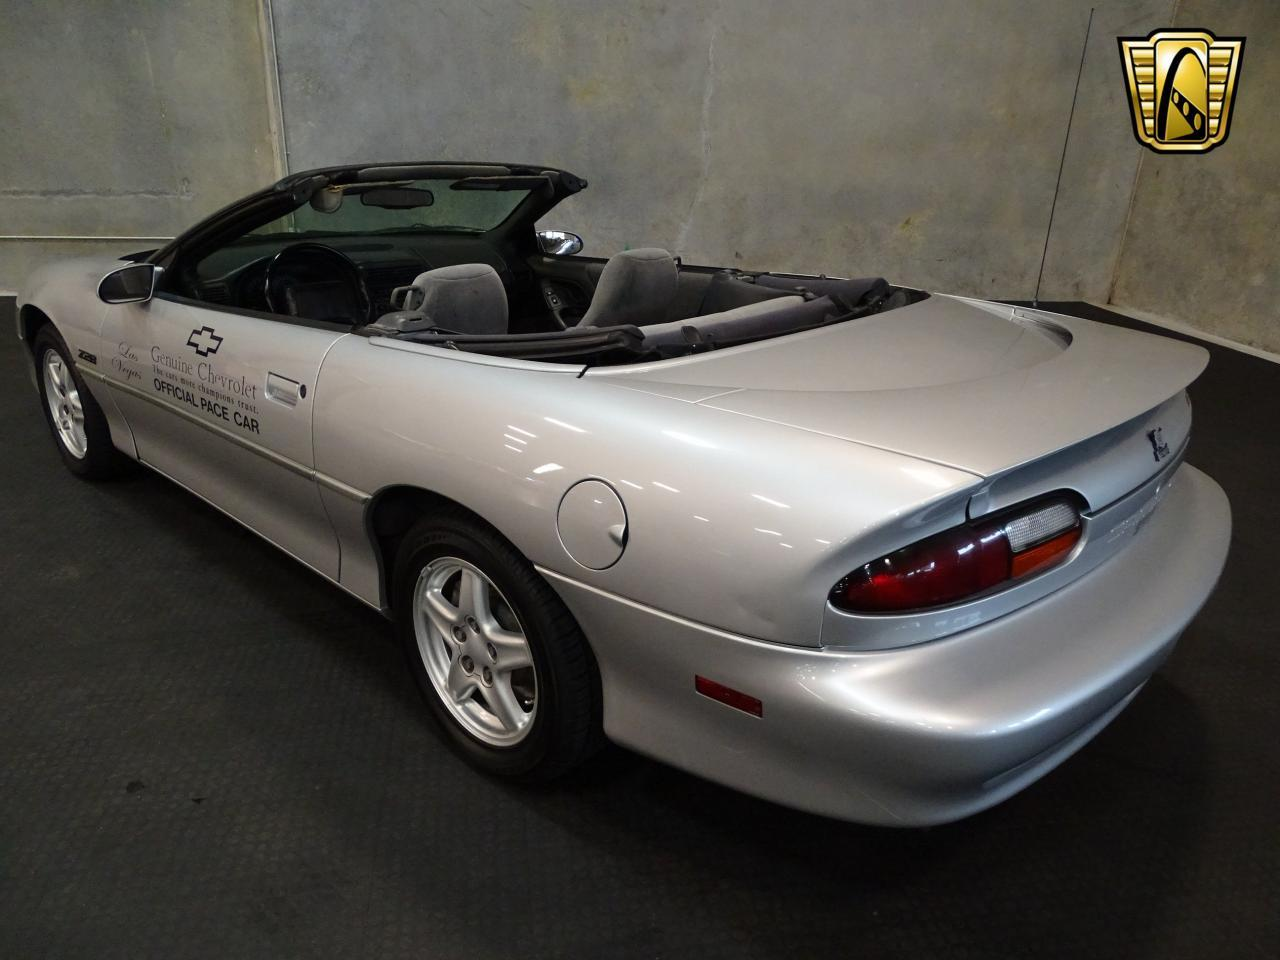 Large Picture of '98 Chevrolet Camaro located in Ruskin Florida - $10,595.00 Offered by Gateway Classic Cars - Tampa - KE0X